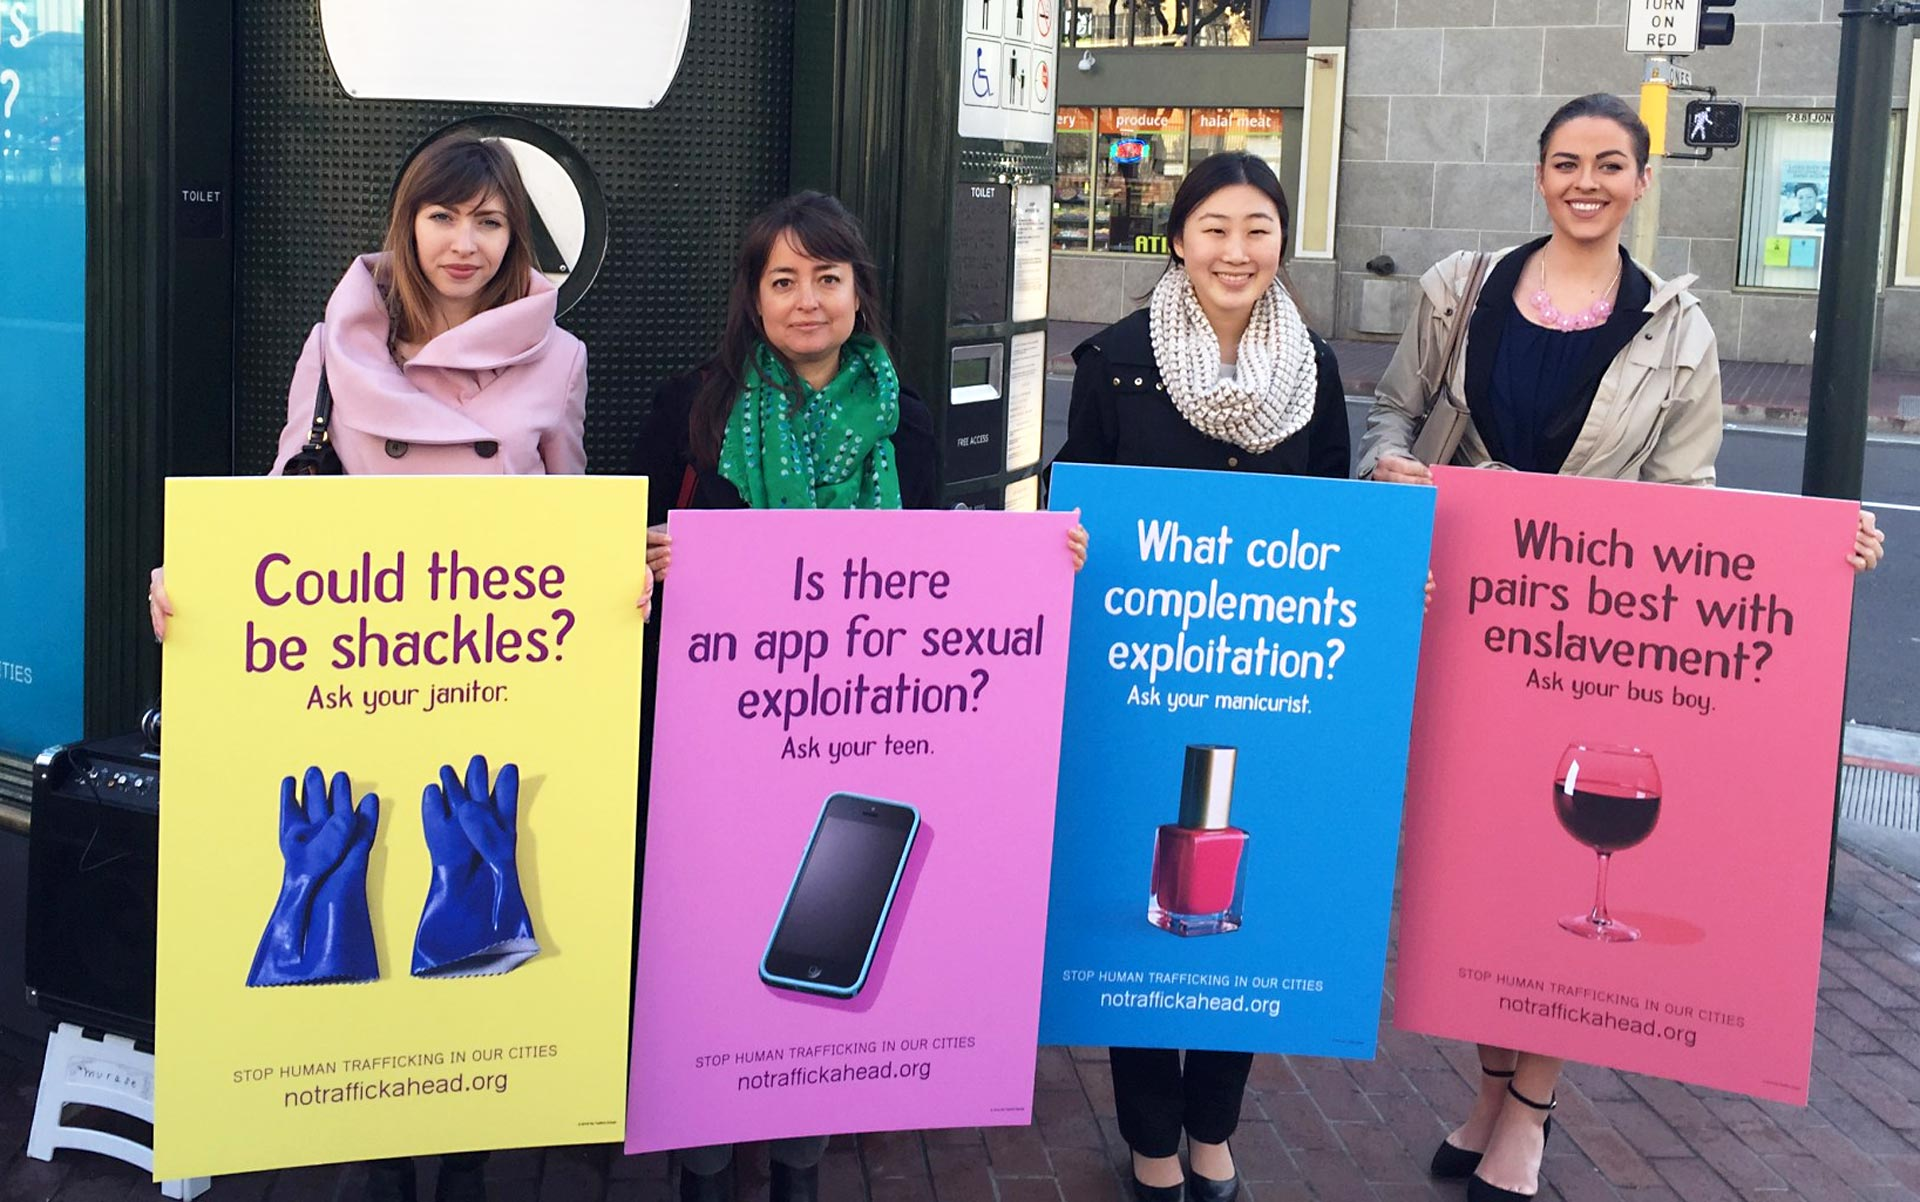 Public policy fellows with San Francisco's Department on the Status of Women hold mock-ups of anti-trafficking billboards.